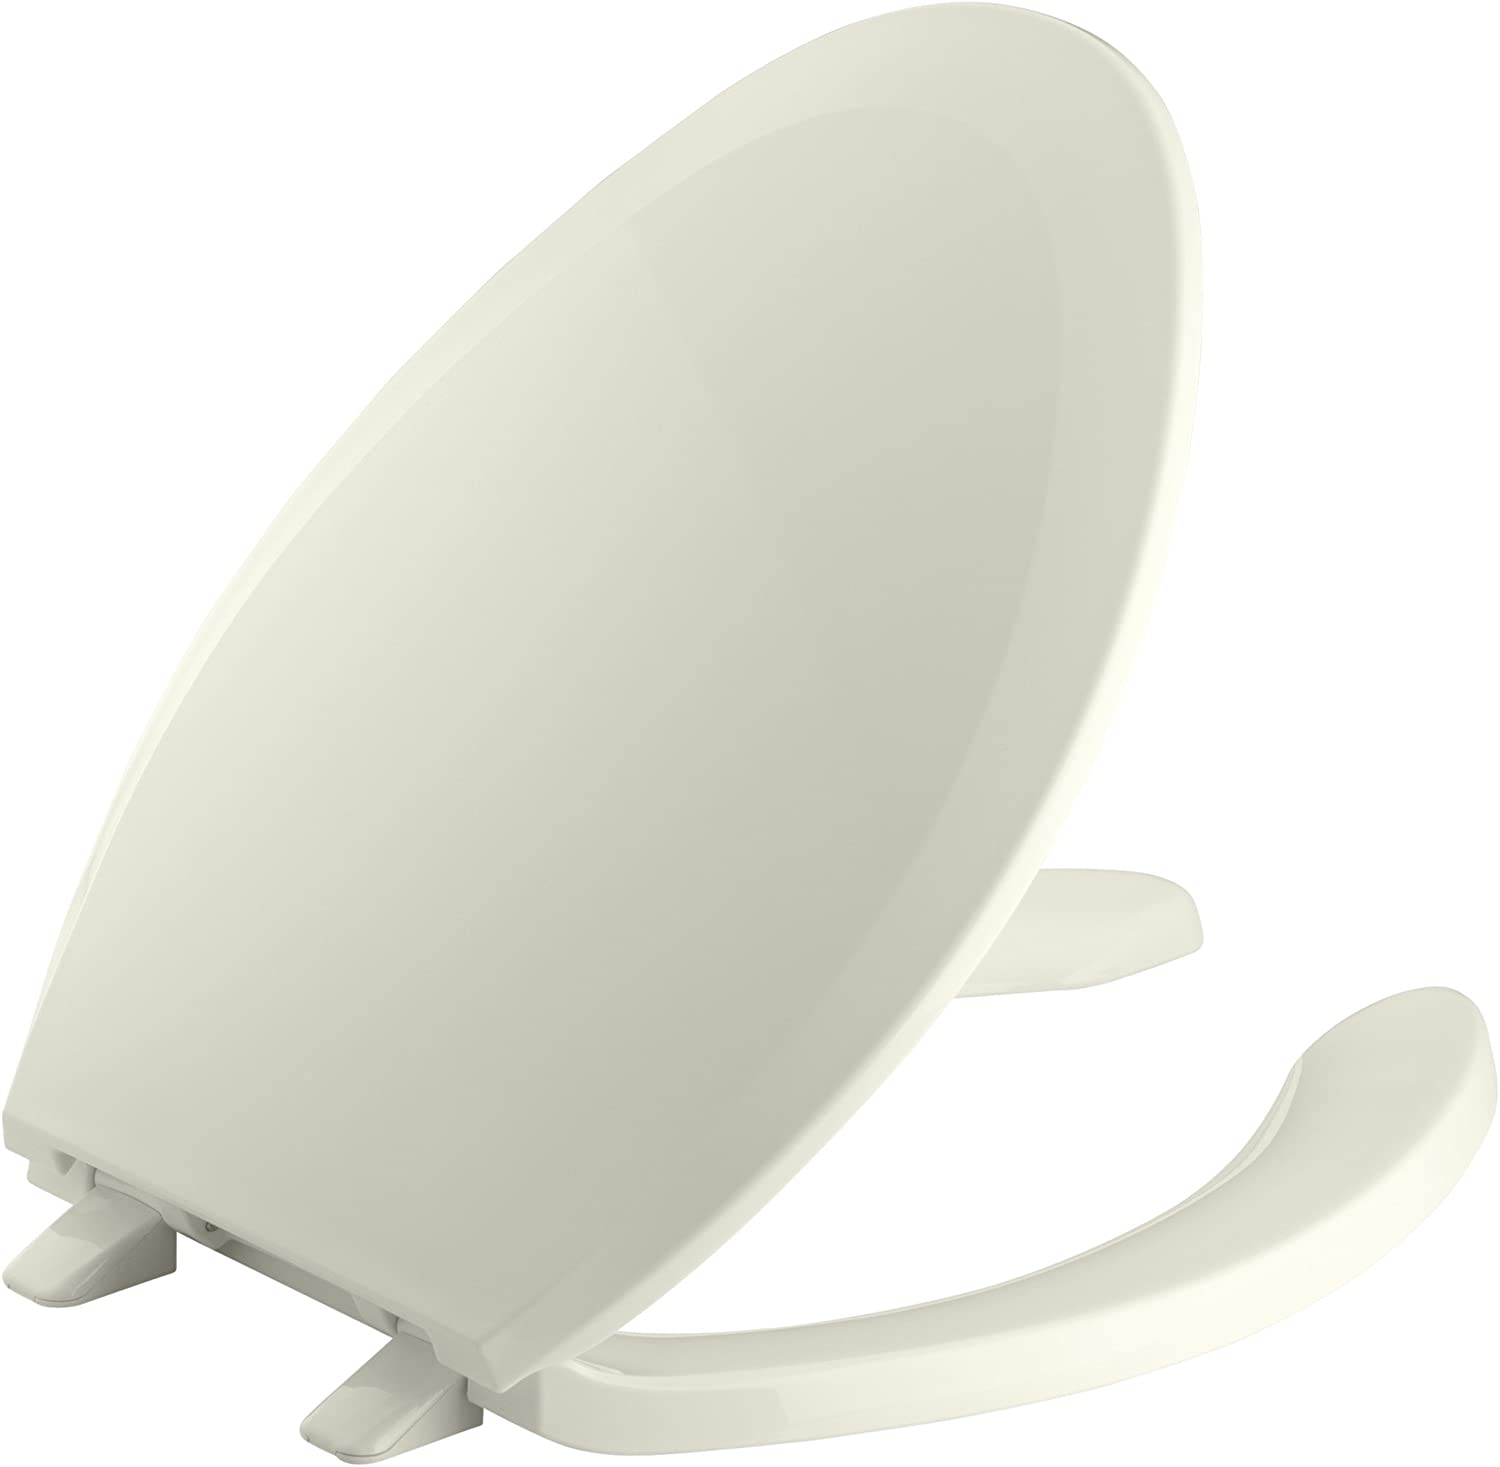 KOHLER K-4650-96 Max 89% OFF Lustra security Elongated Seat Toilet Biscui Open-Front